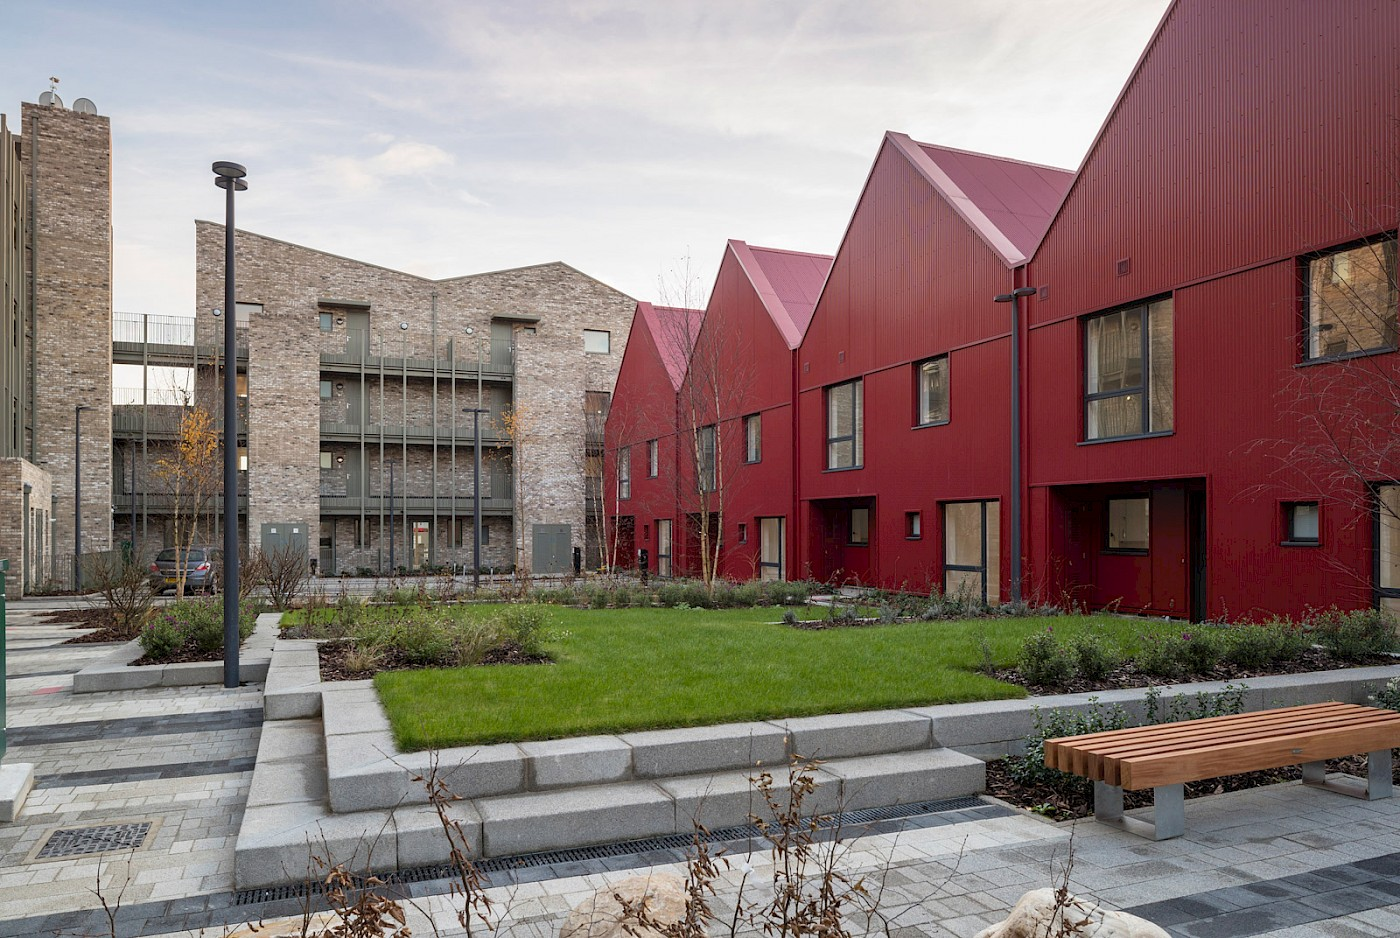 Affordable housing scheme on Sutherland Road in Waltham Forest, London